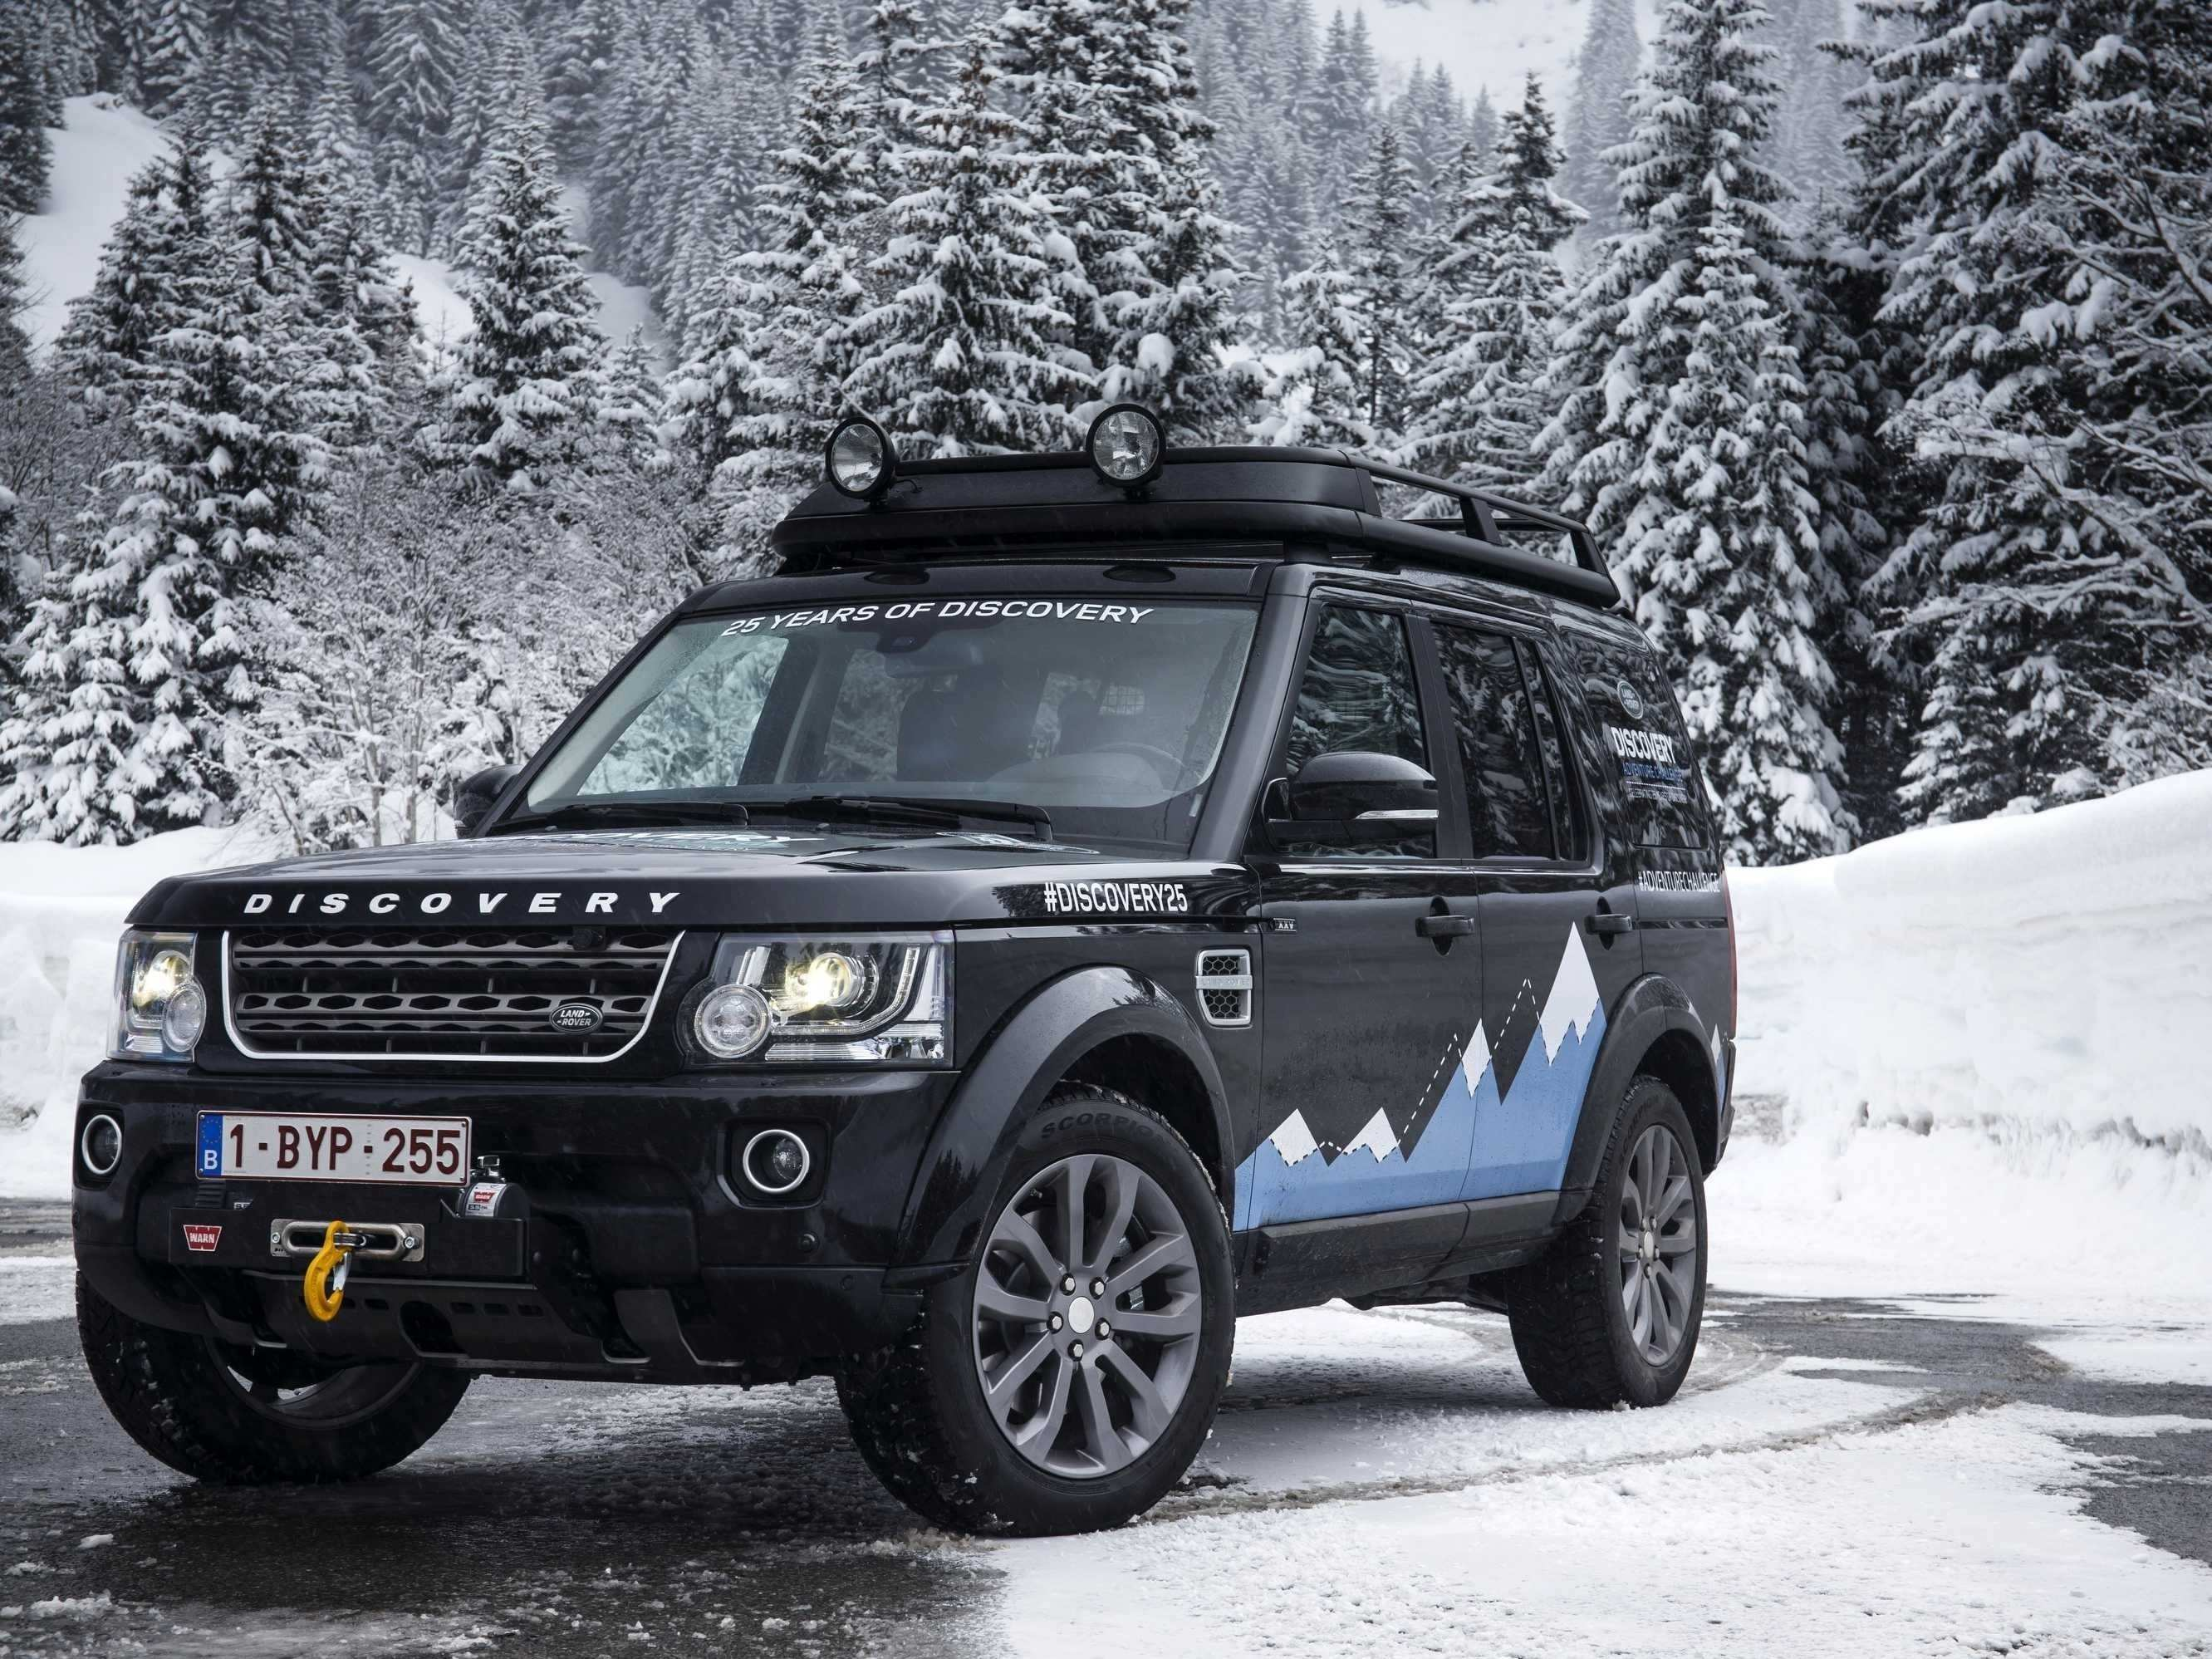 20 New 2020 Land Rover LR4 Images